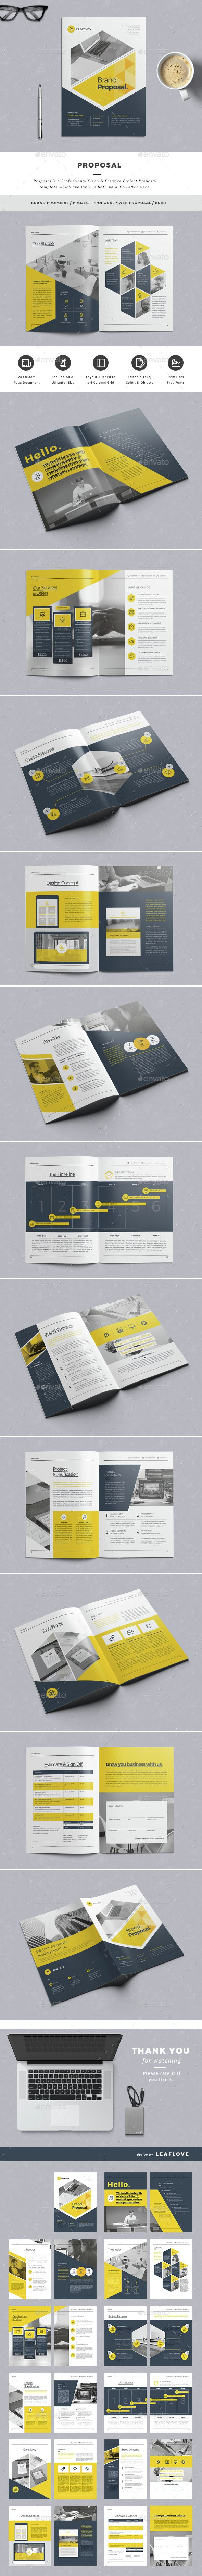 Proposal Template InDesign INDD. Download here: http://graphicriver.net/item/proposal/15159473?ref=ksioks